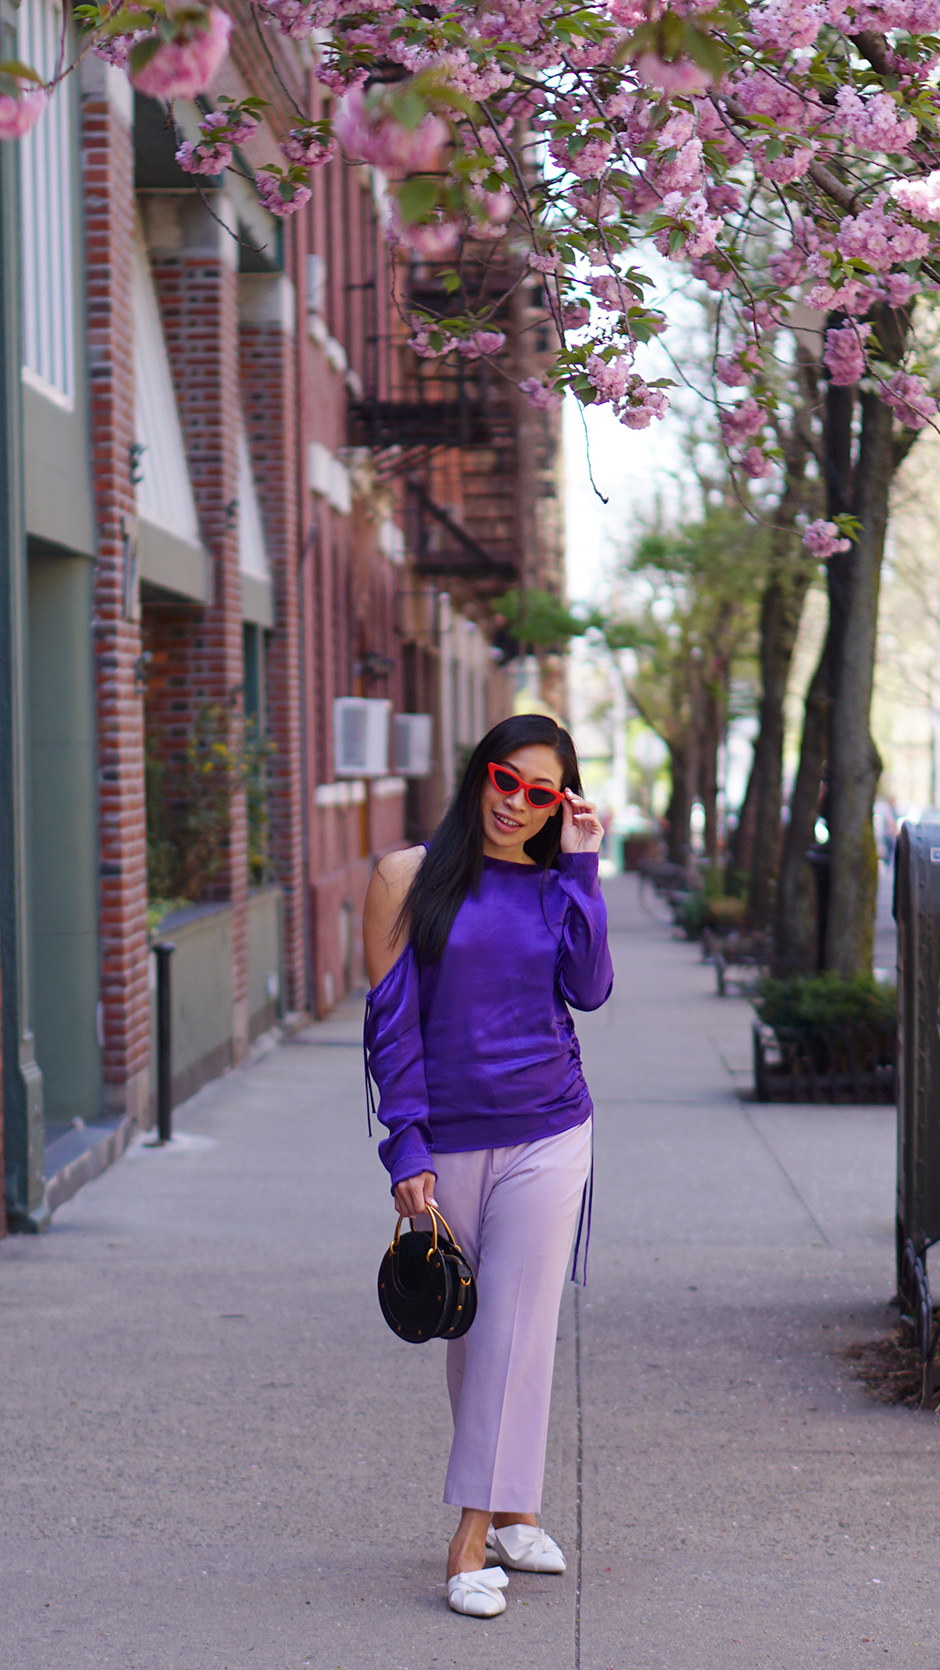 Spring Fashion with Banana Republic #ad #fashionblog #styleblog #fashionblogger #springoutfit #outfitideas #accessories #sakura #shopthelook #purple #lilactrend #lilac #purpleoutfit #purpletrend #redhat #bakercap #outfitinspiration #outfitideas #streetstyle #whiteblazer #cottonblazer #linenblazer #fashioninfluencer #outfitinspiration #outfitideas #casualstyle #travelstyle